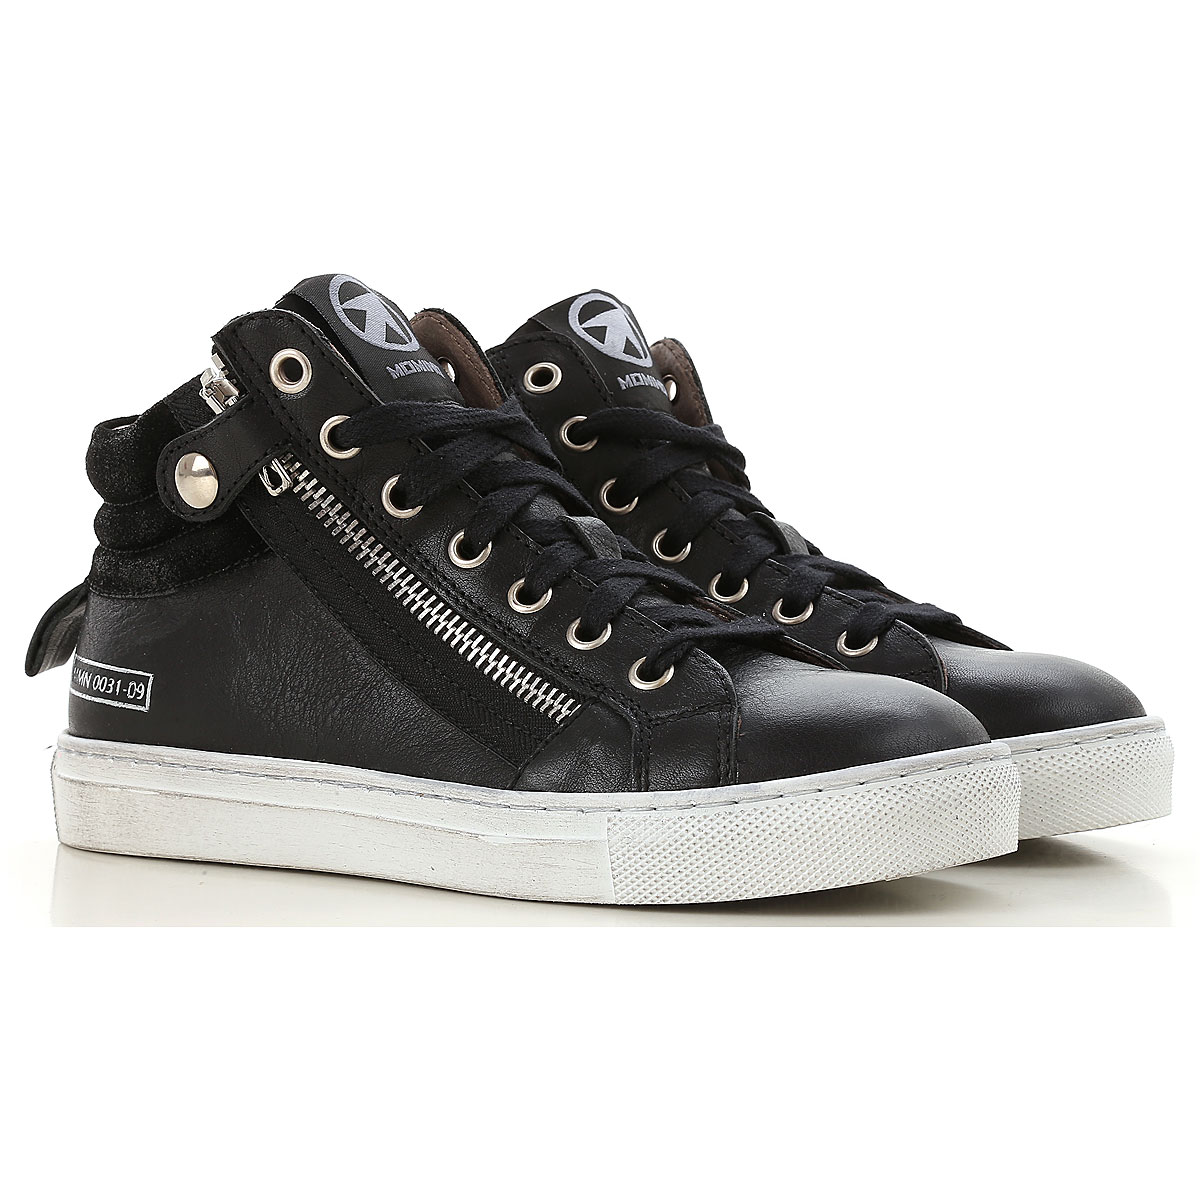 Image of Momino Kids Shoes for Boys, Black, Leather, 2017, 26 27 28 29 30 31 32 33 34 35 36 38